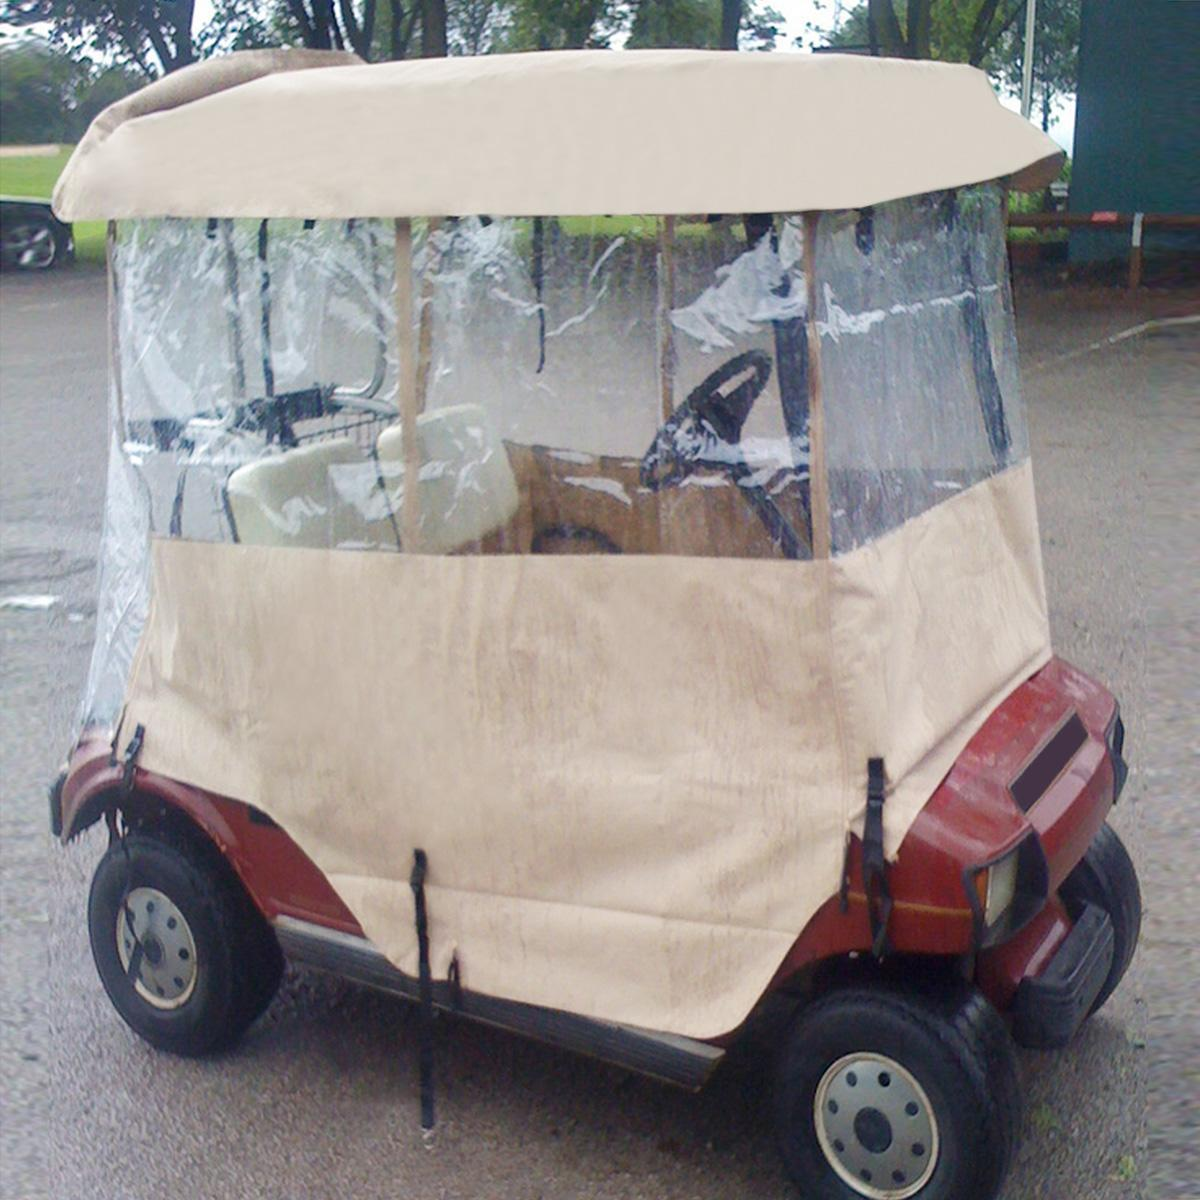 2 Passenger Driving Enclosure Golf Cart Cover.Fit For EZ